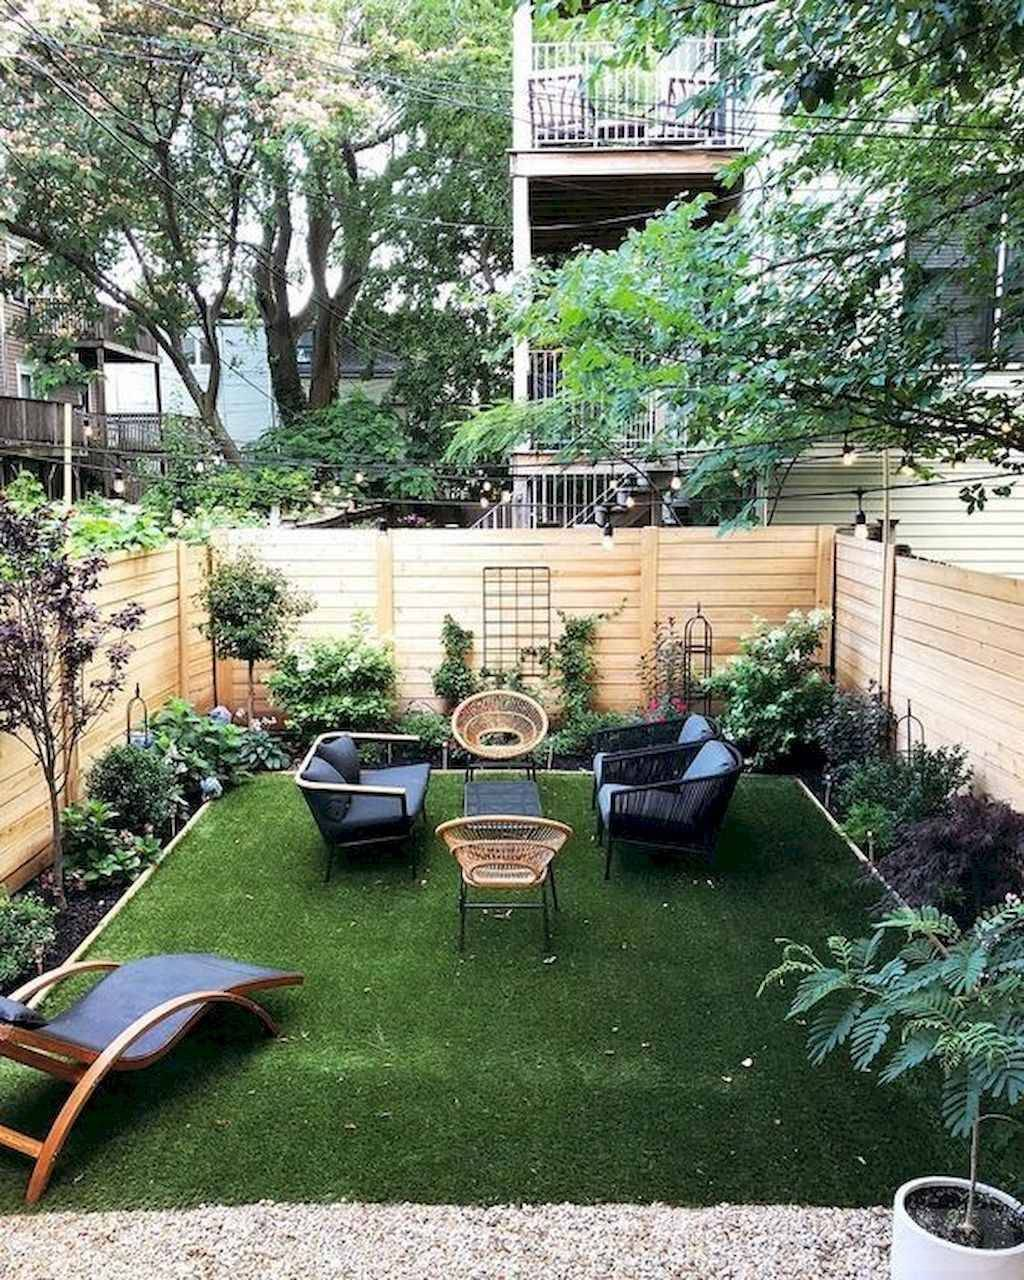 amazing garden ideas-757097387339541341